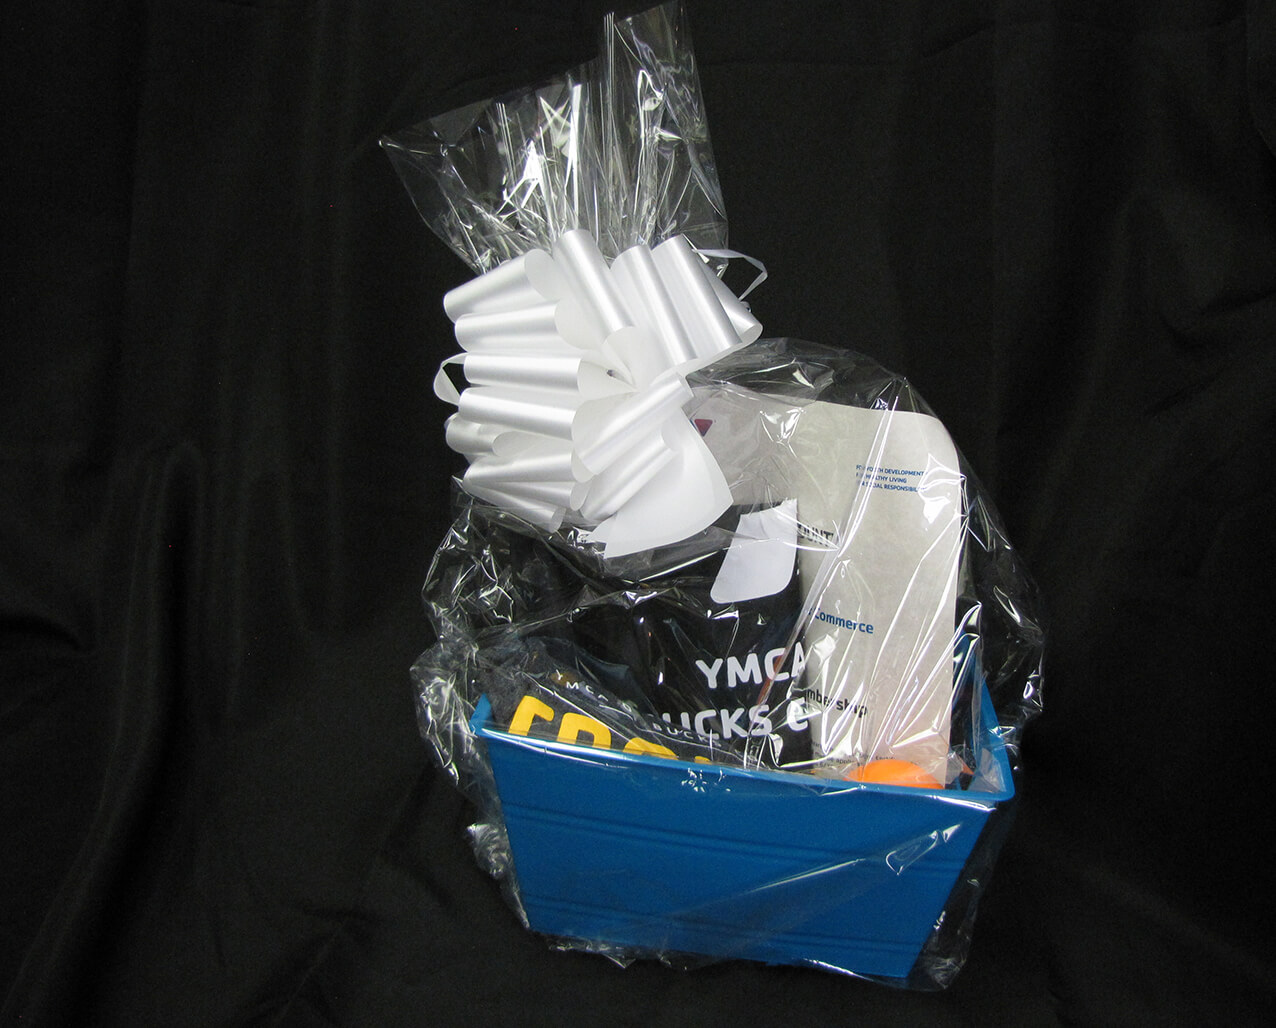 YMCA Membership (Blue) Basket